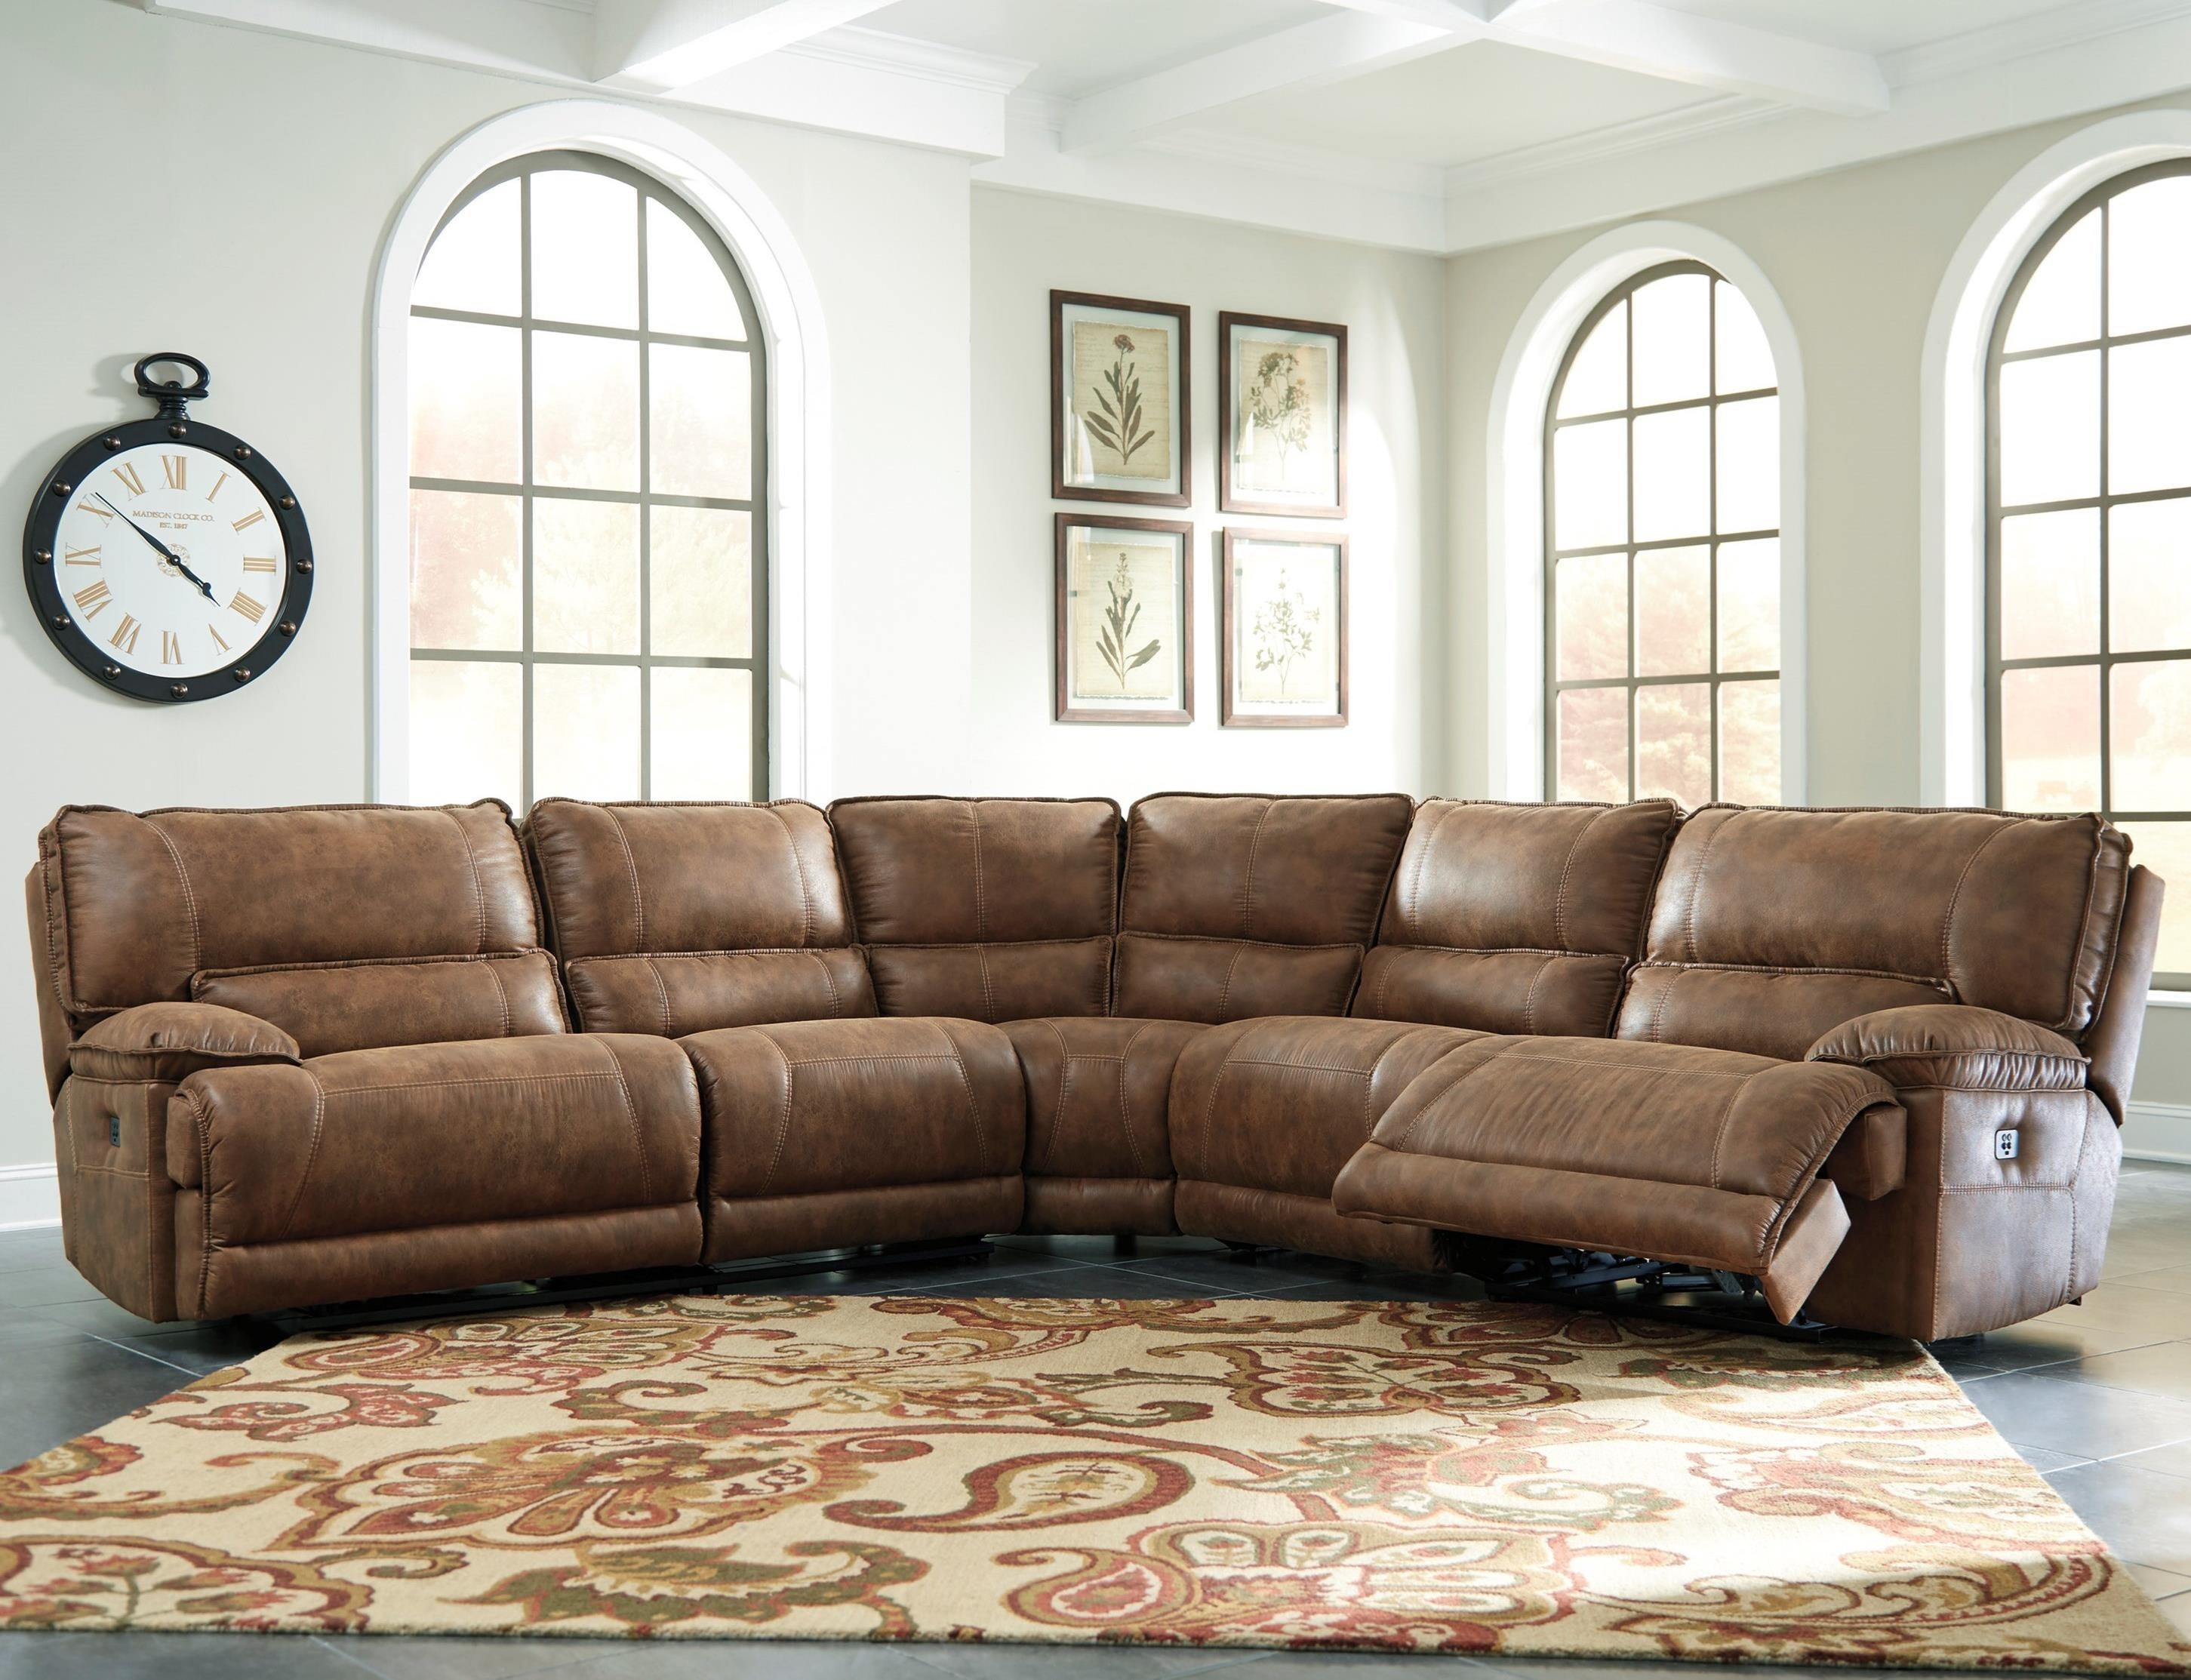 Signature Design By Ashley Grattis 5 Piece Power Reclining Sectional In  Brown Faux Leather